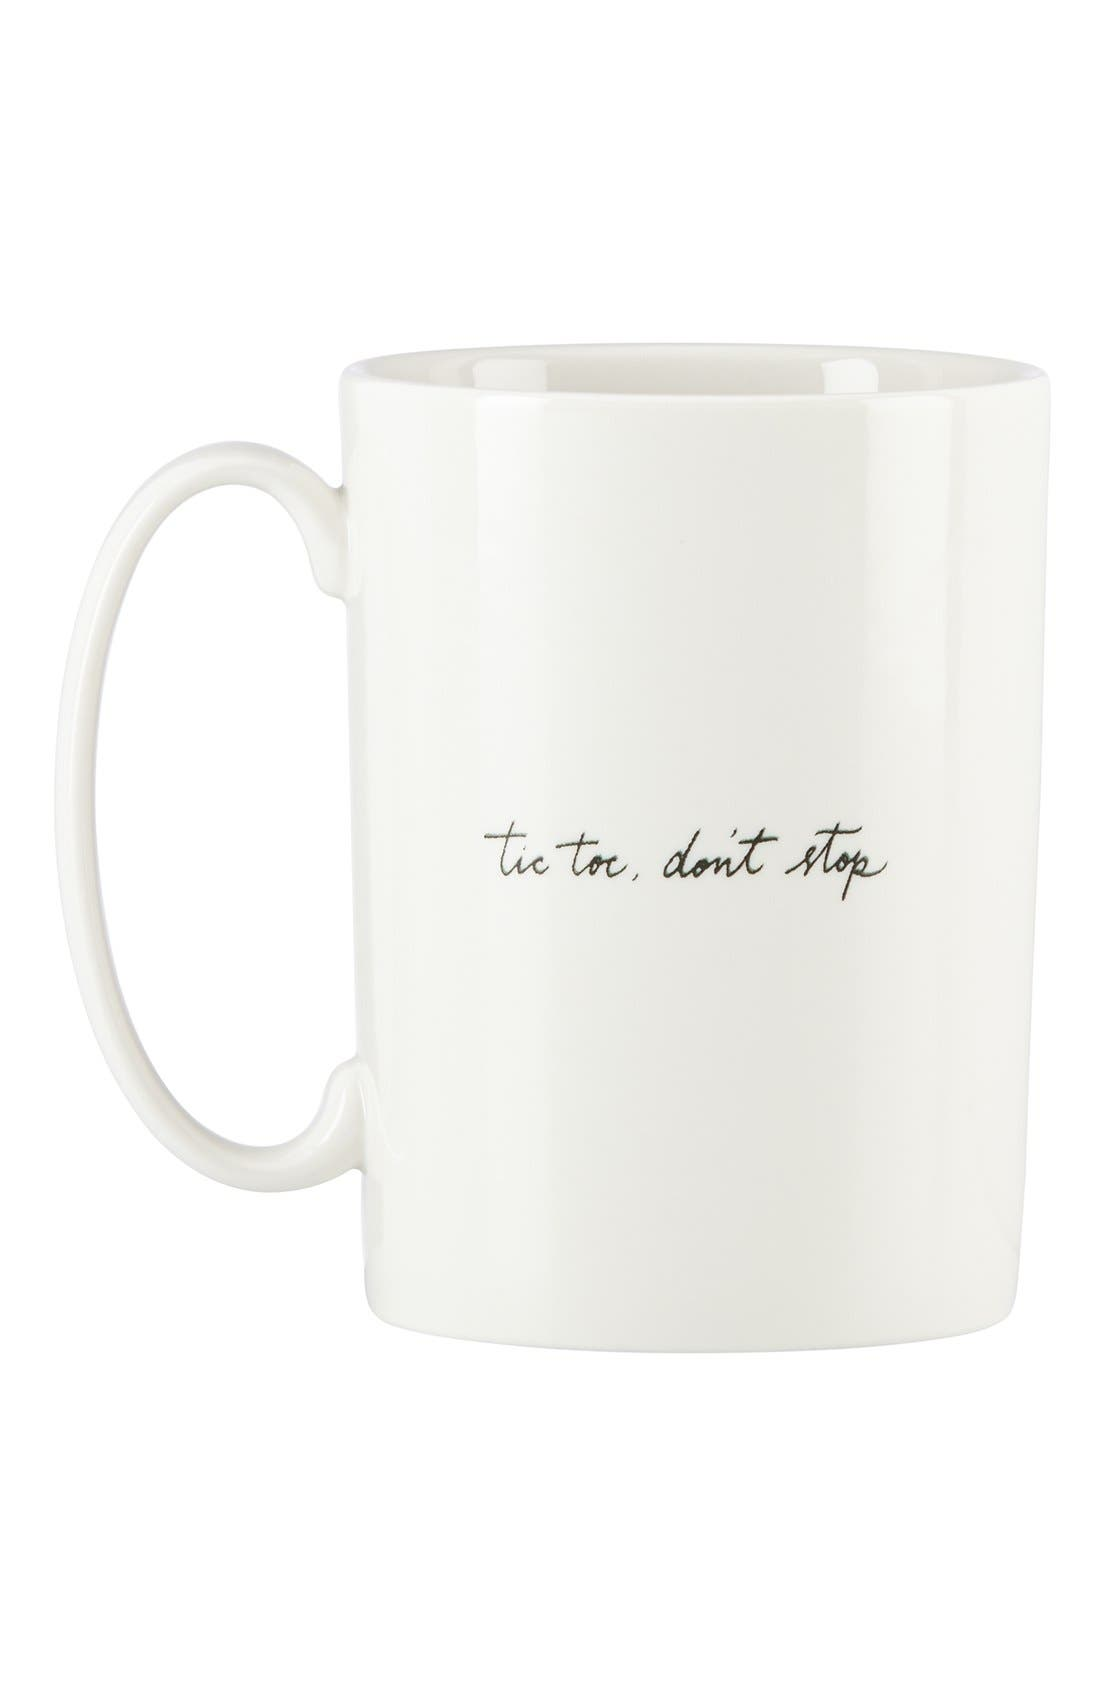 'snap happy - tic toc' porcelain mug,                             Alternate thumbnail 2, color,                             White/ Multi